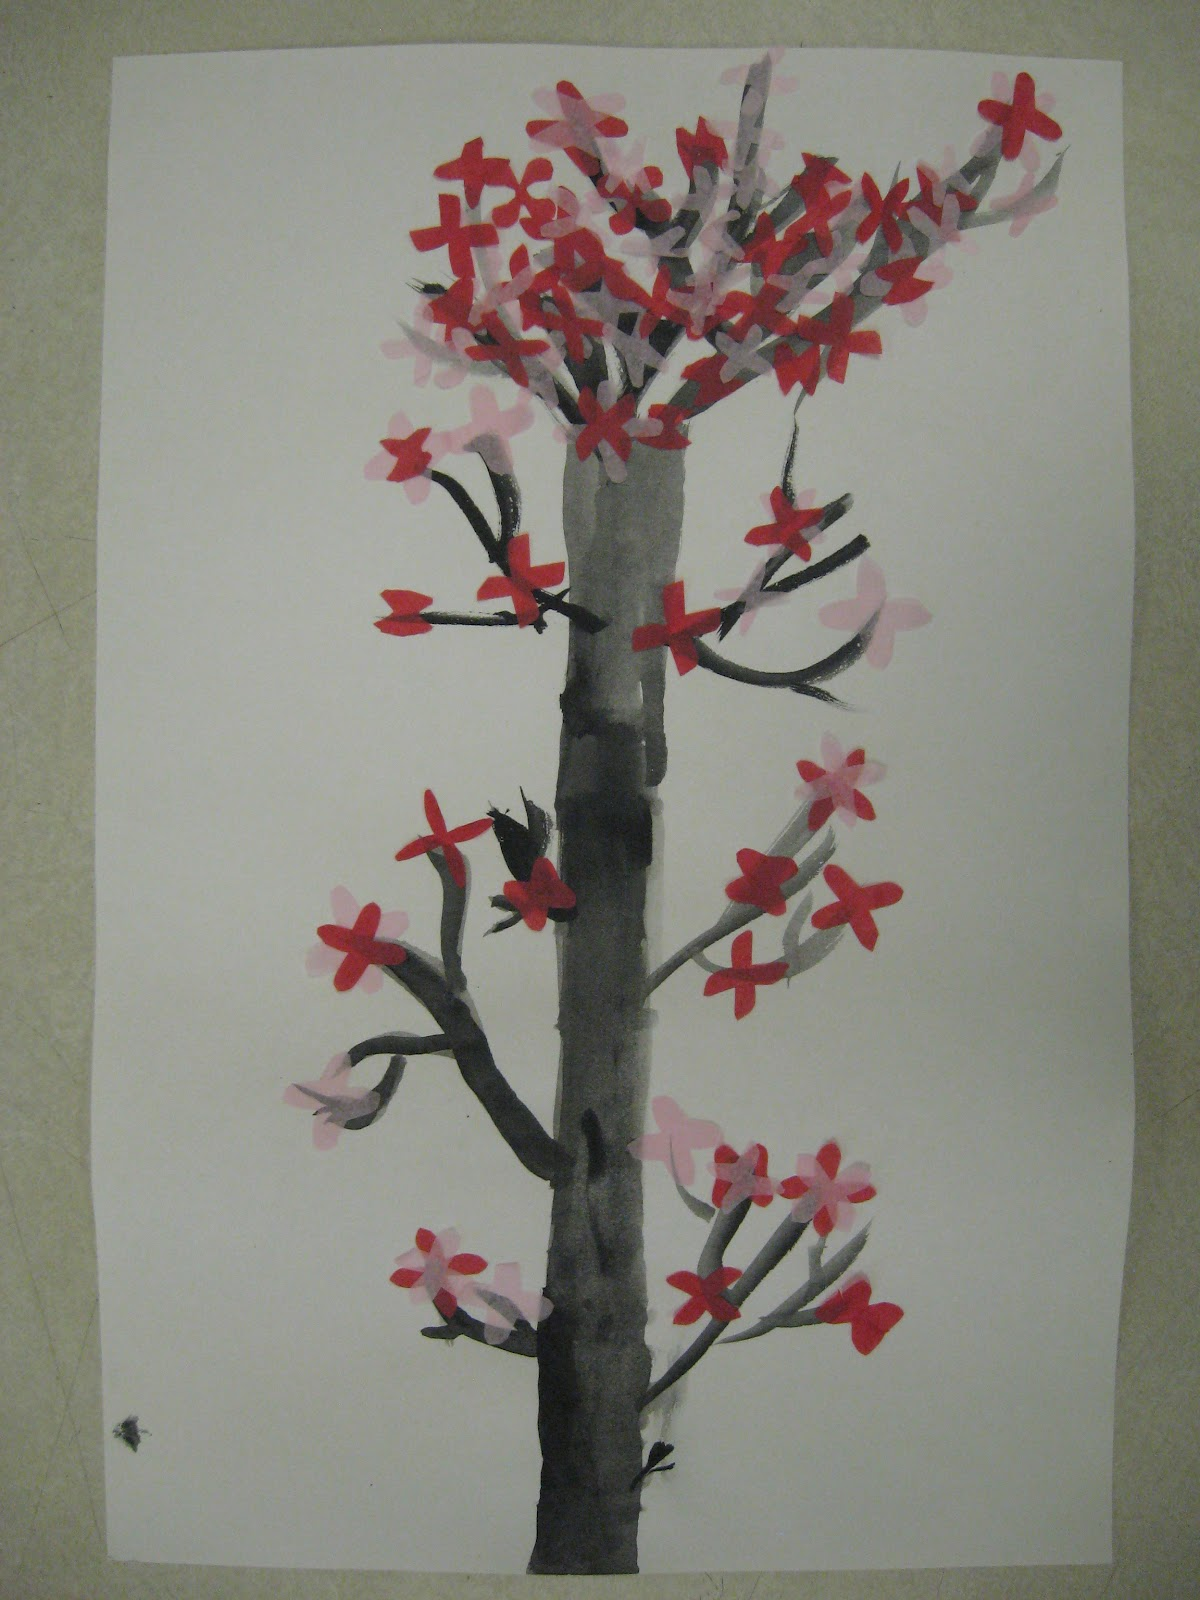 How To Draw A Cherry Blossom Tree In Pencil 3rd grade cherry blossom trees